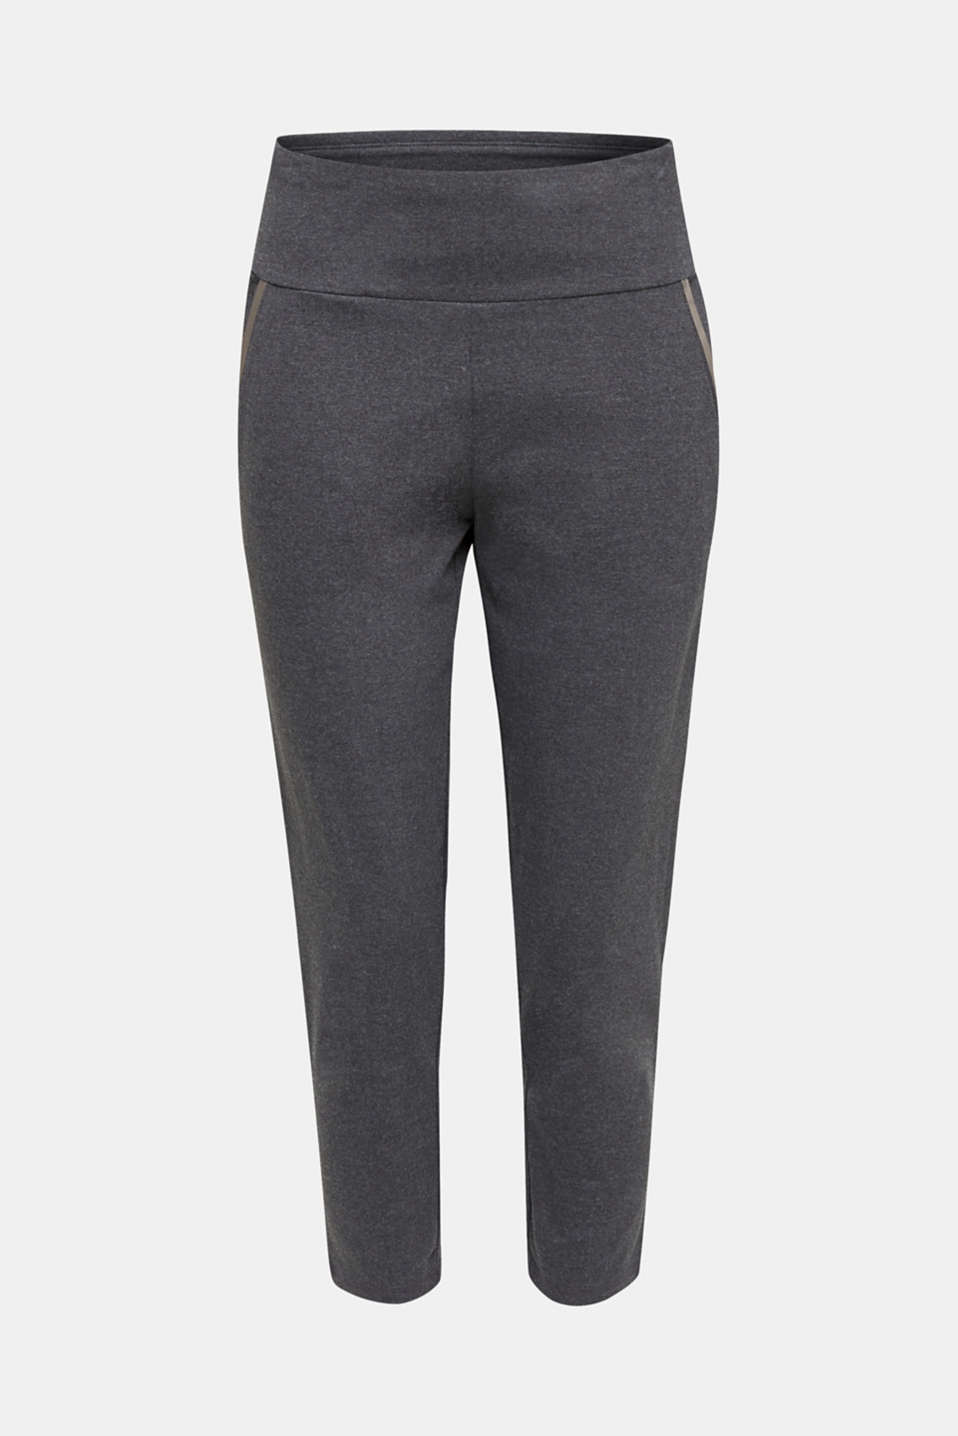 Ankle-length stretch jersey trousers with shiny details, ANTHRACITE 2, detail image number 6